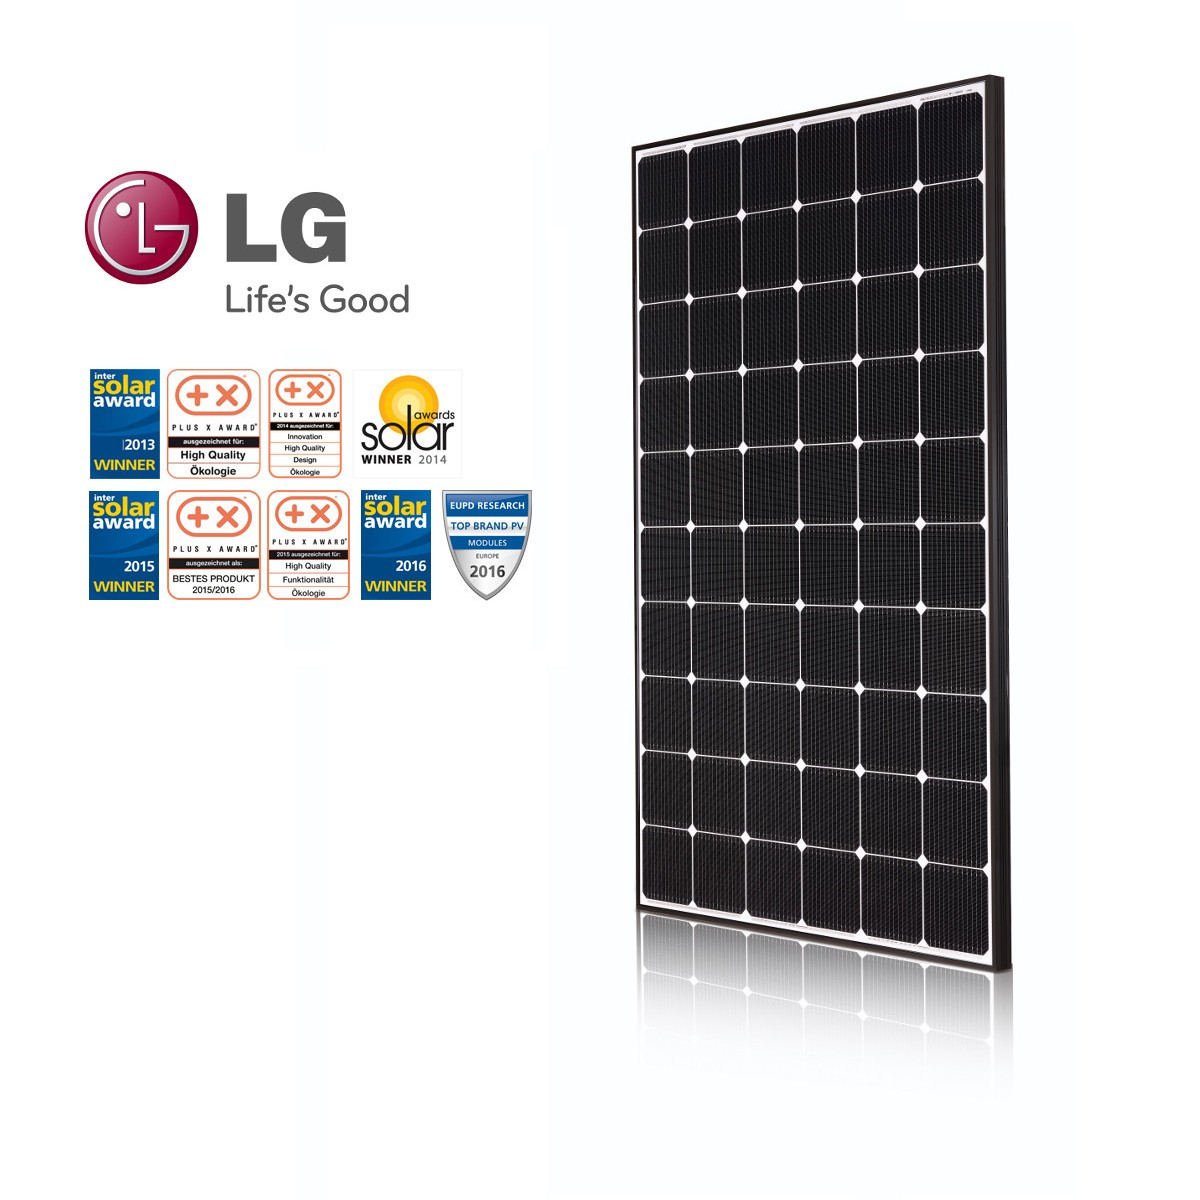 Lg Solar Lg330n1c A5 Neon 2 Panel With Corrugated Thin Film Cells On Wiring Panels In